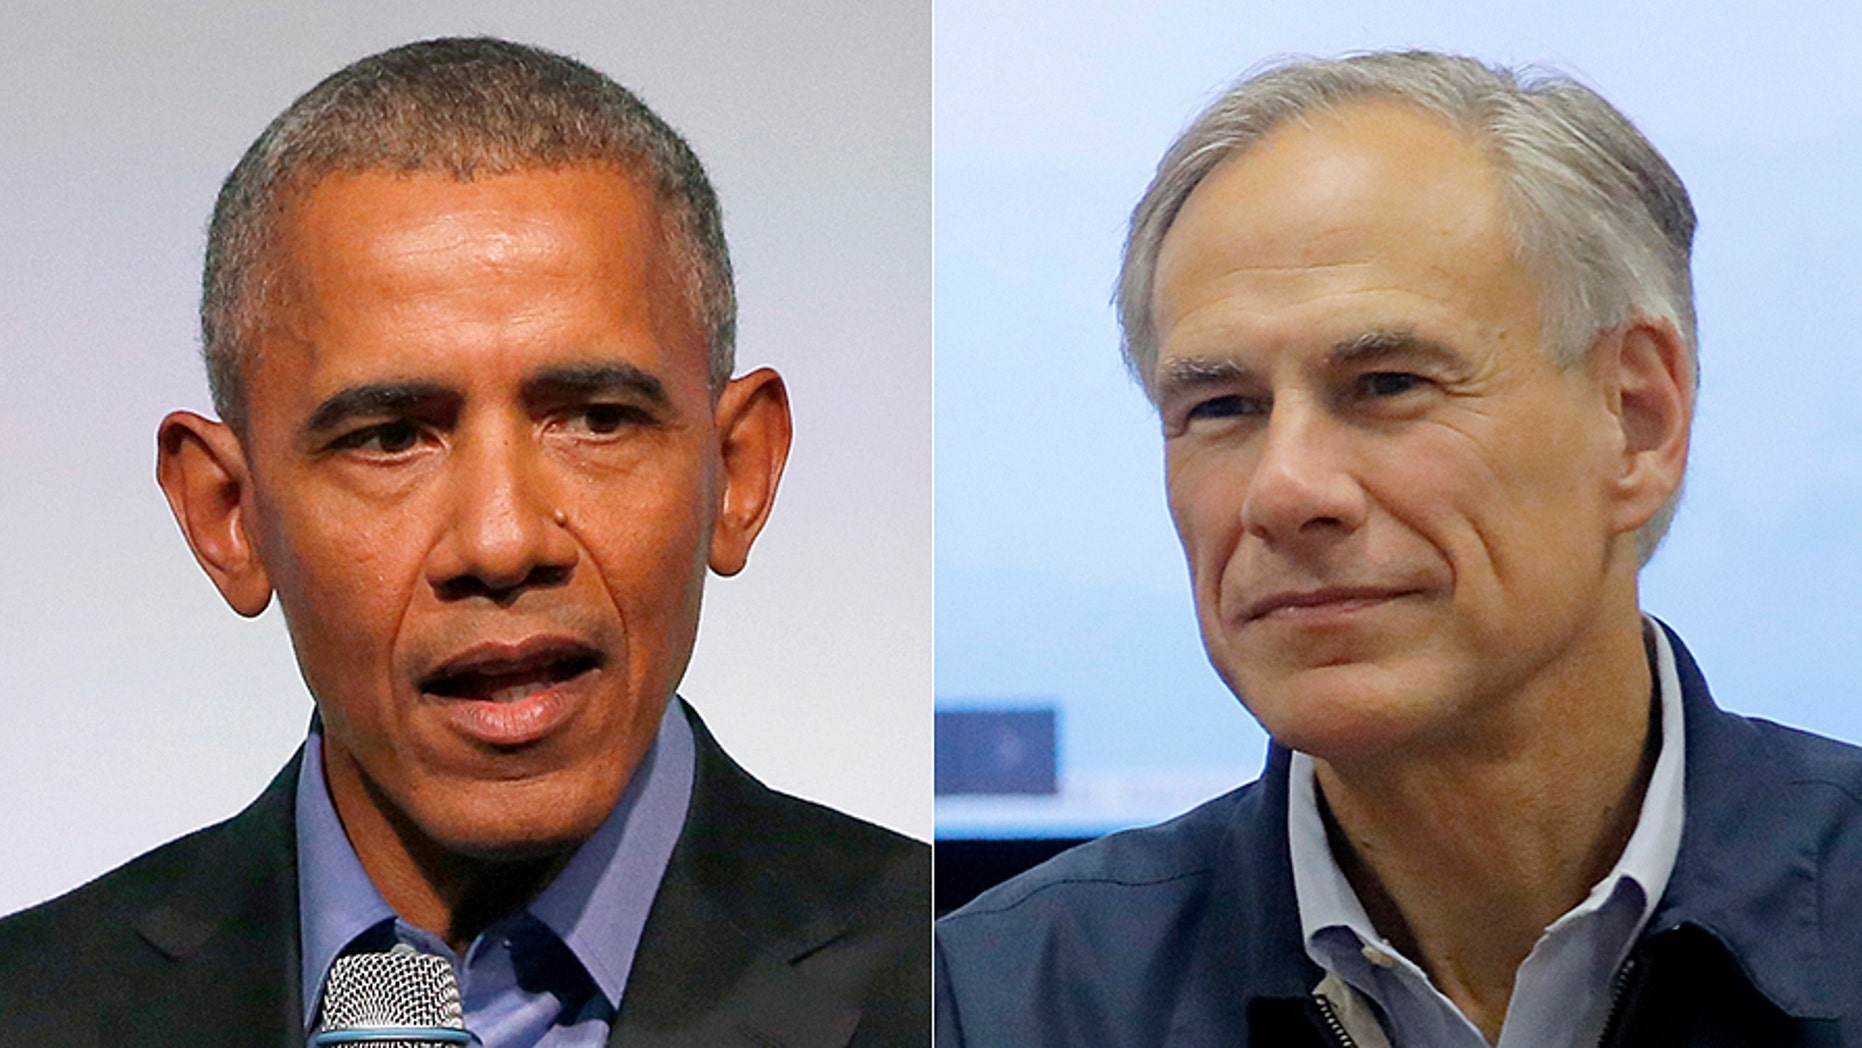 Former President Obama and Texas Gov. Greg Abbott were the targets of two homemade bombs by a Texas woman, prosecutors say.